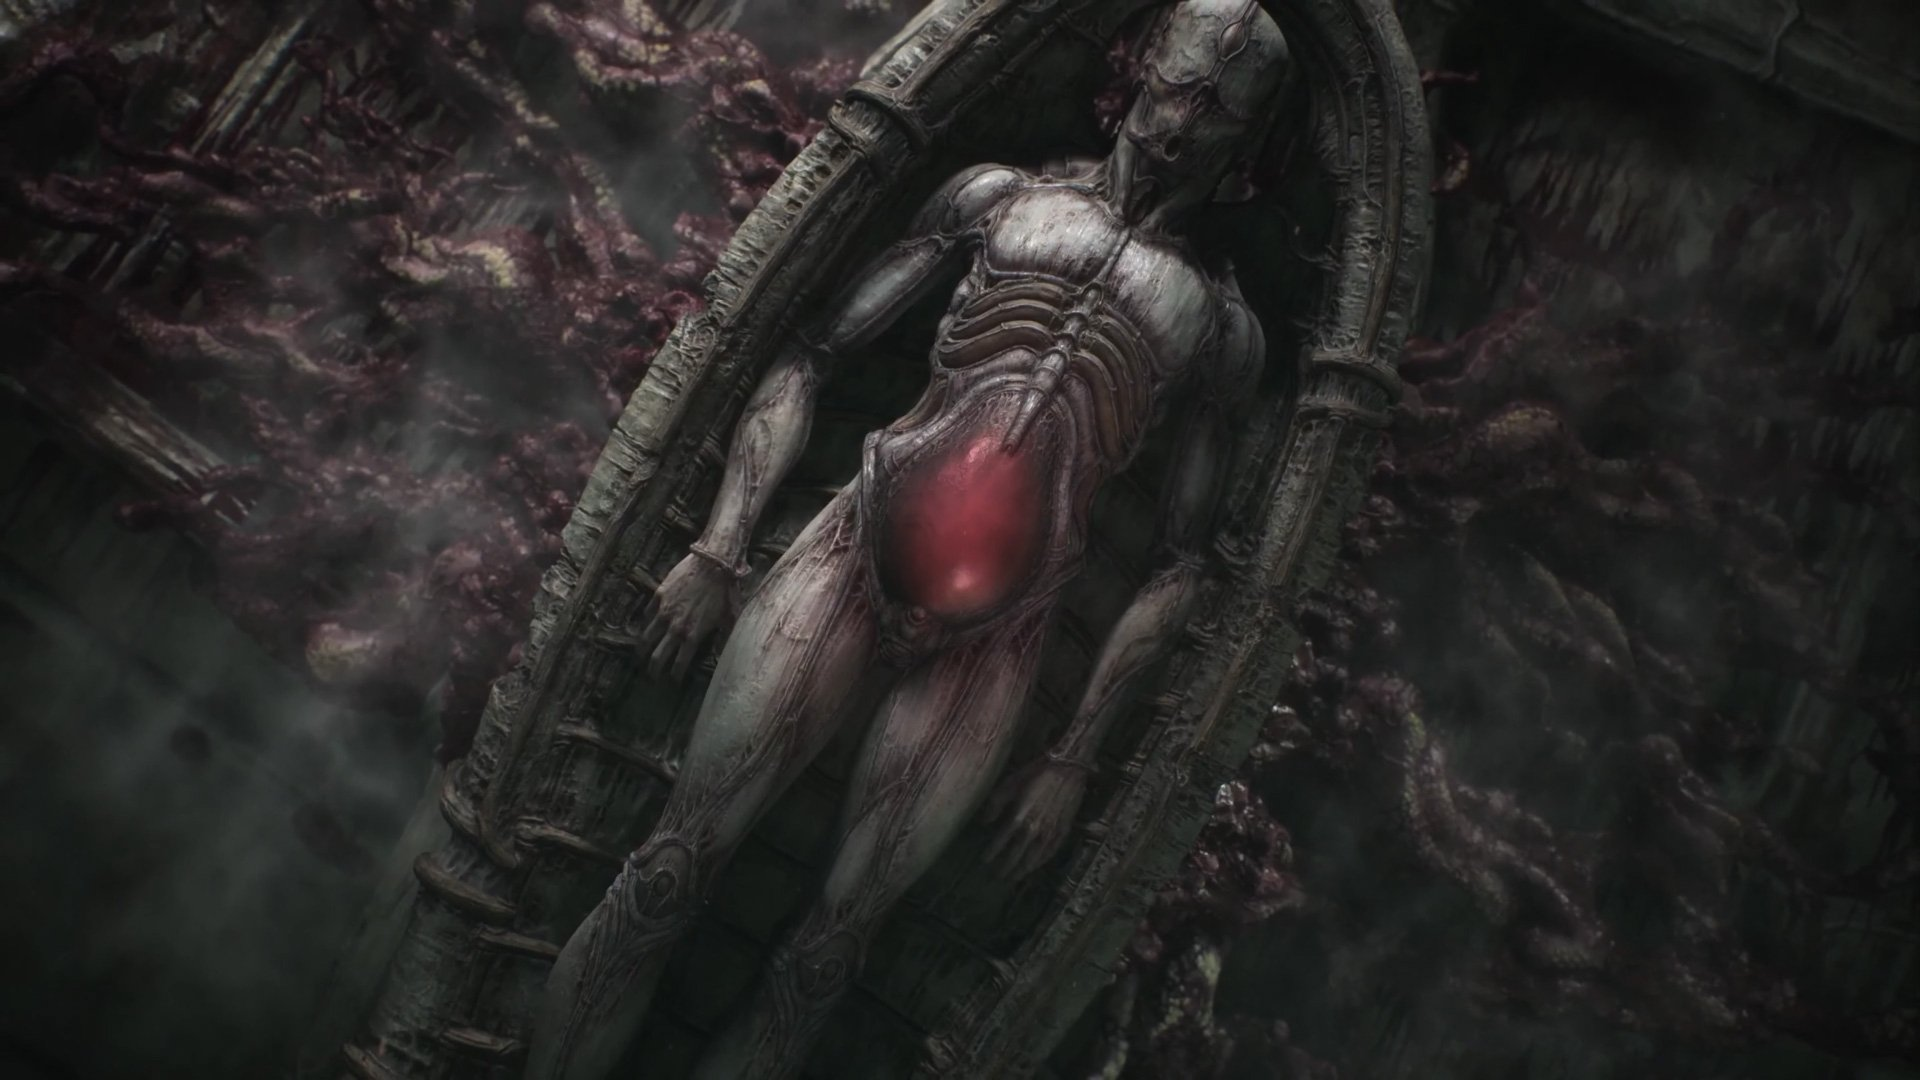 Scorn has been teasing us for years and I don't even mind screenshot